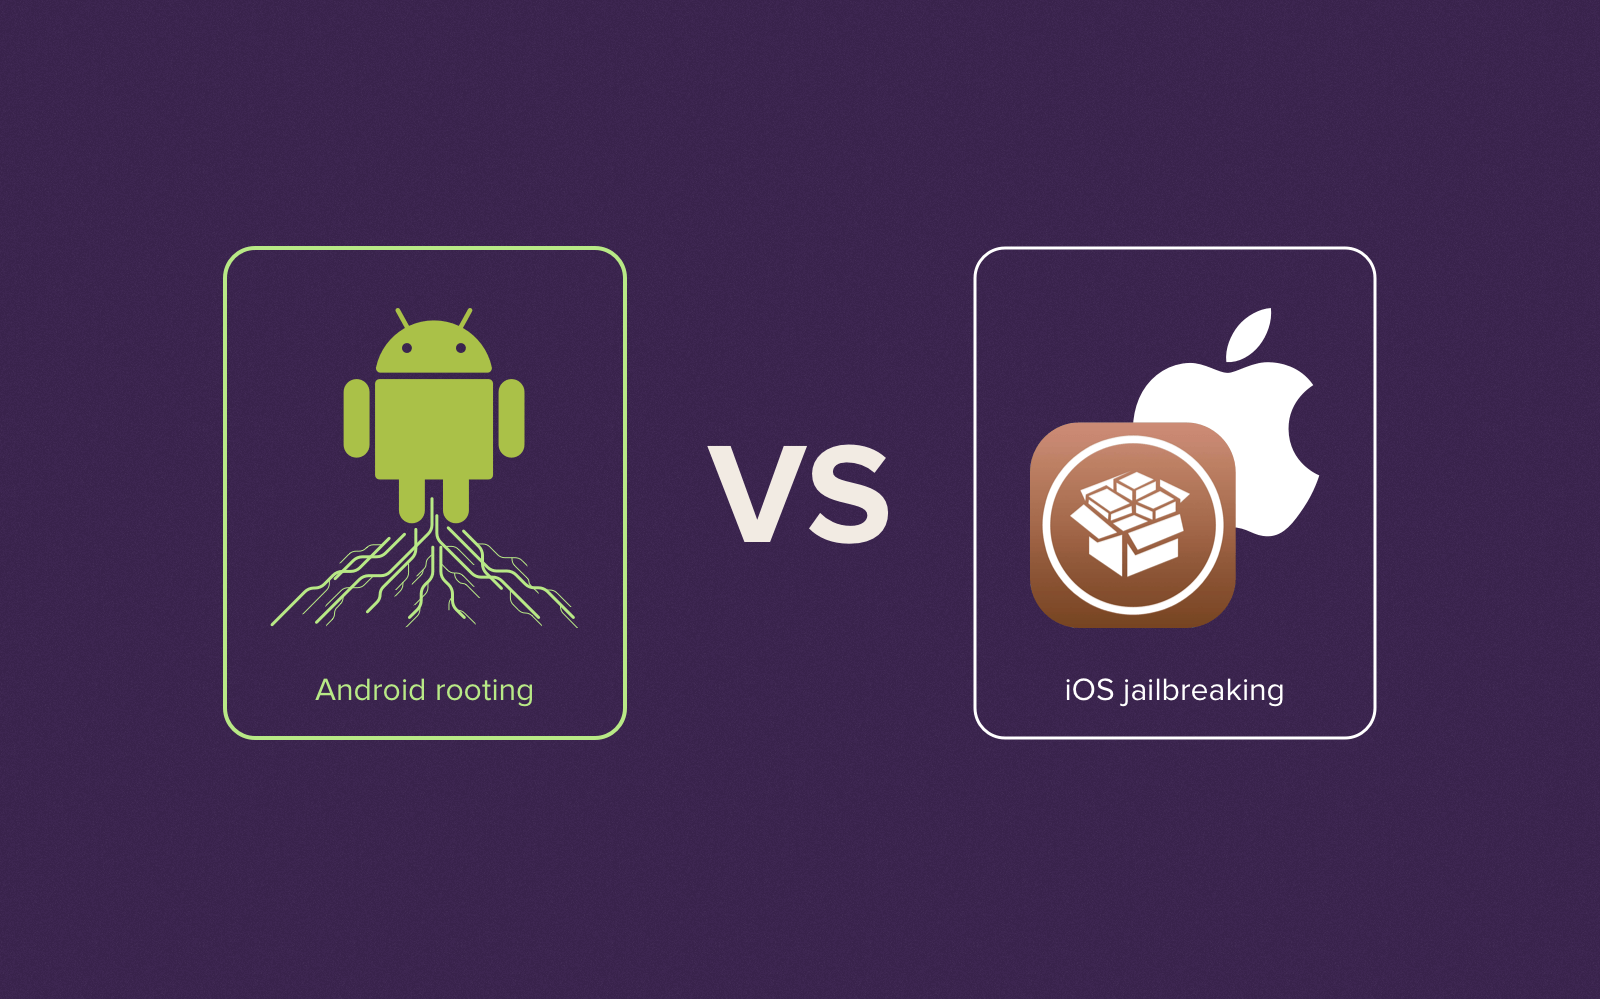 Rooting vs jailbreaking